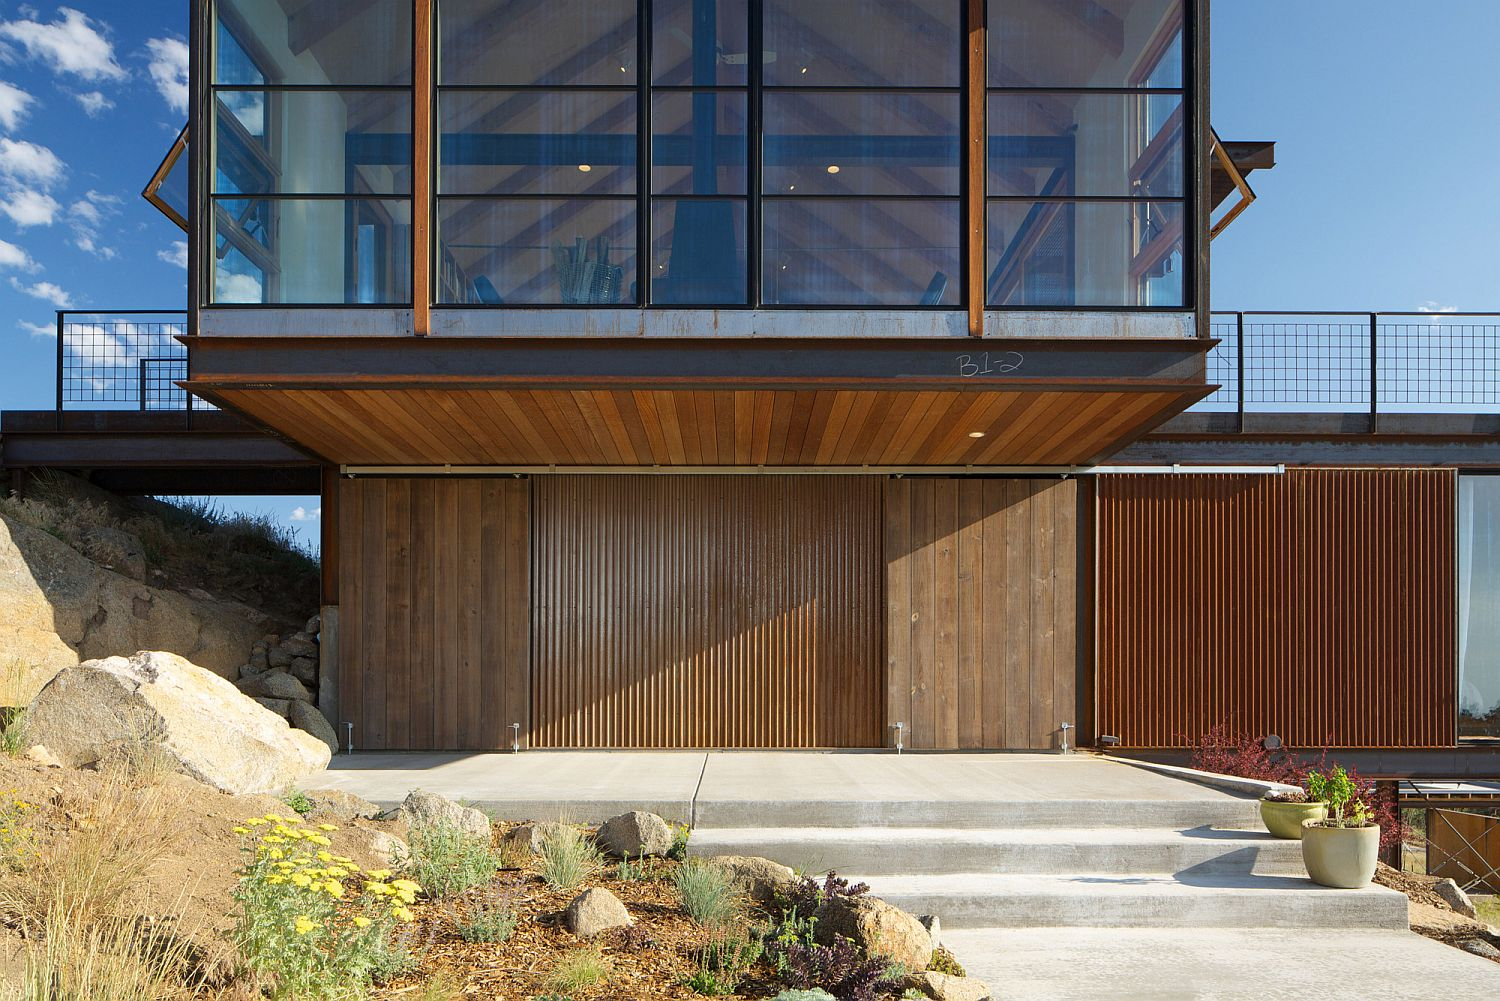 Stone-wood-metal-and-glass-shape-a-stunning-home-in-Boulder-Colorado